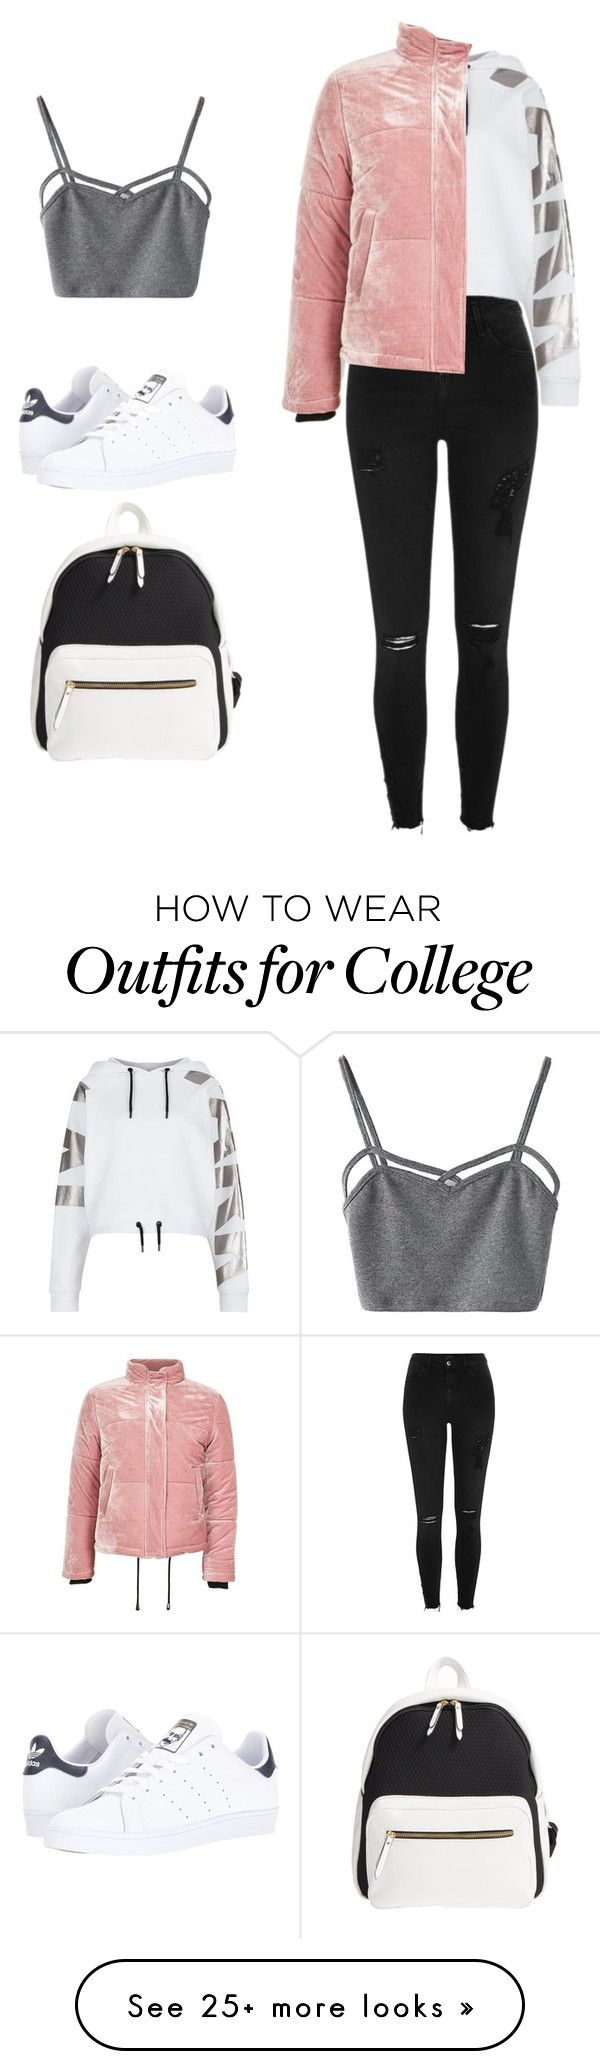 """poverty"" by ludopolier on Polyvore featuring Poverty Flats, River Island, Ivy Park, adidas, WithChic and Topshop"